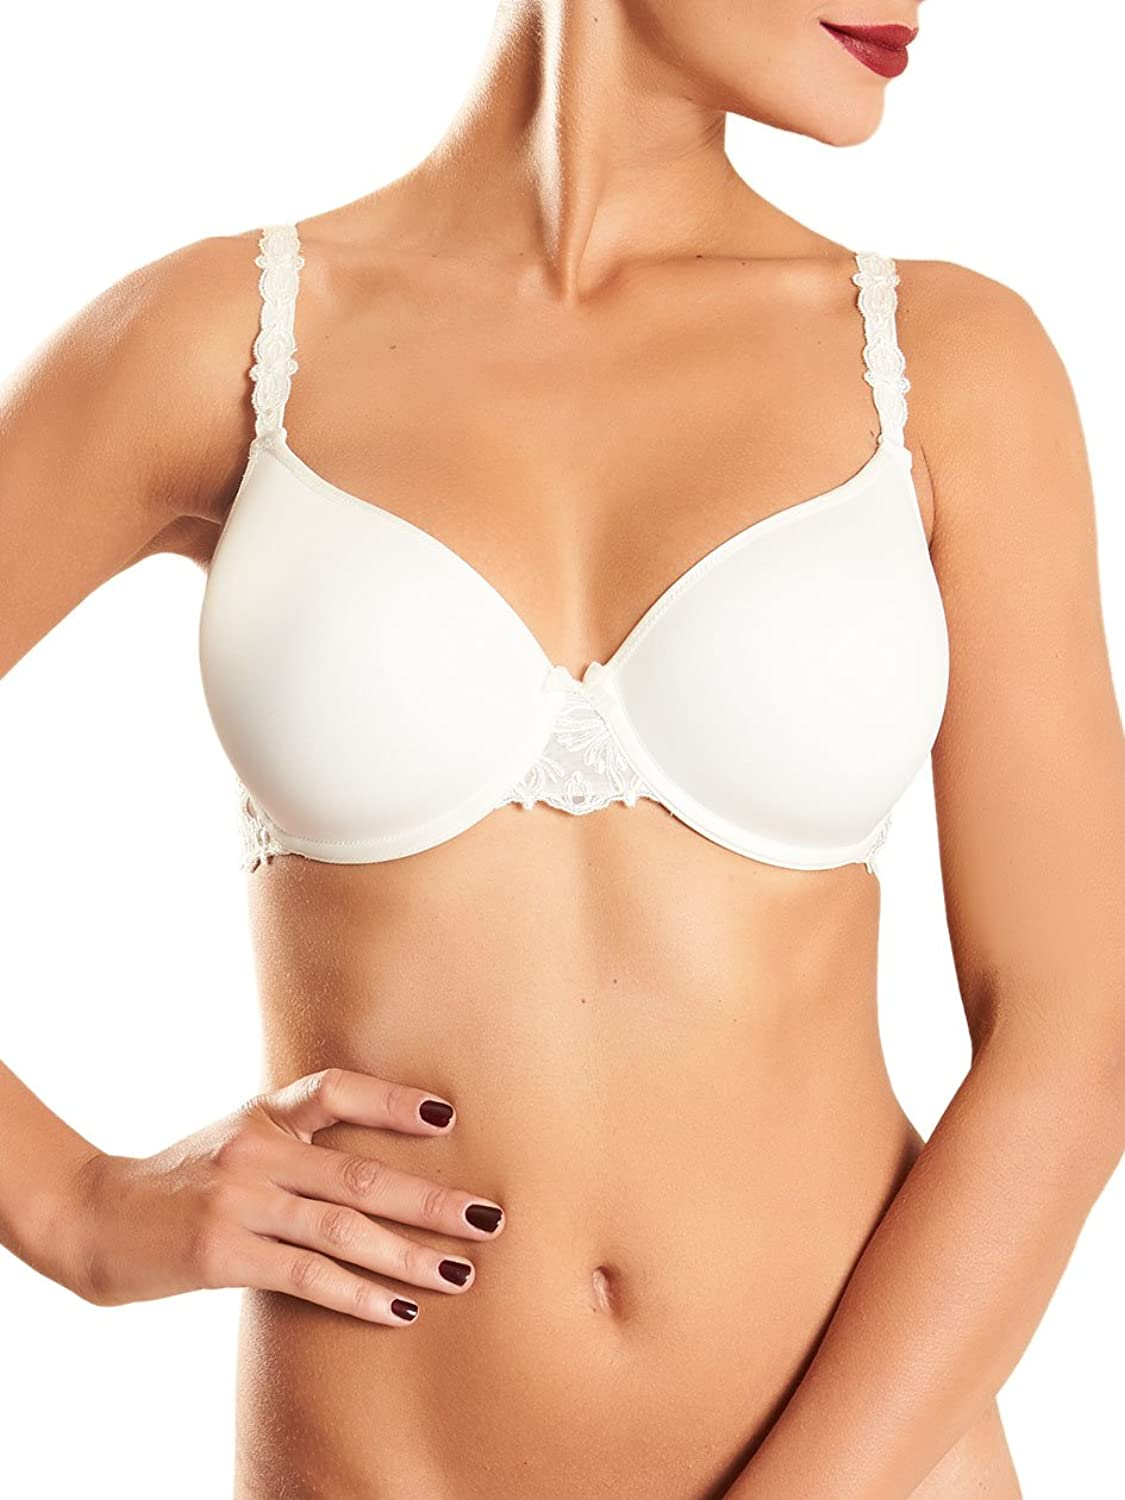 Chantelle Champs Elysees Congreenible TShirt Bra (2606)